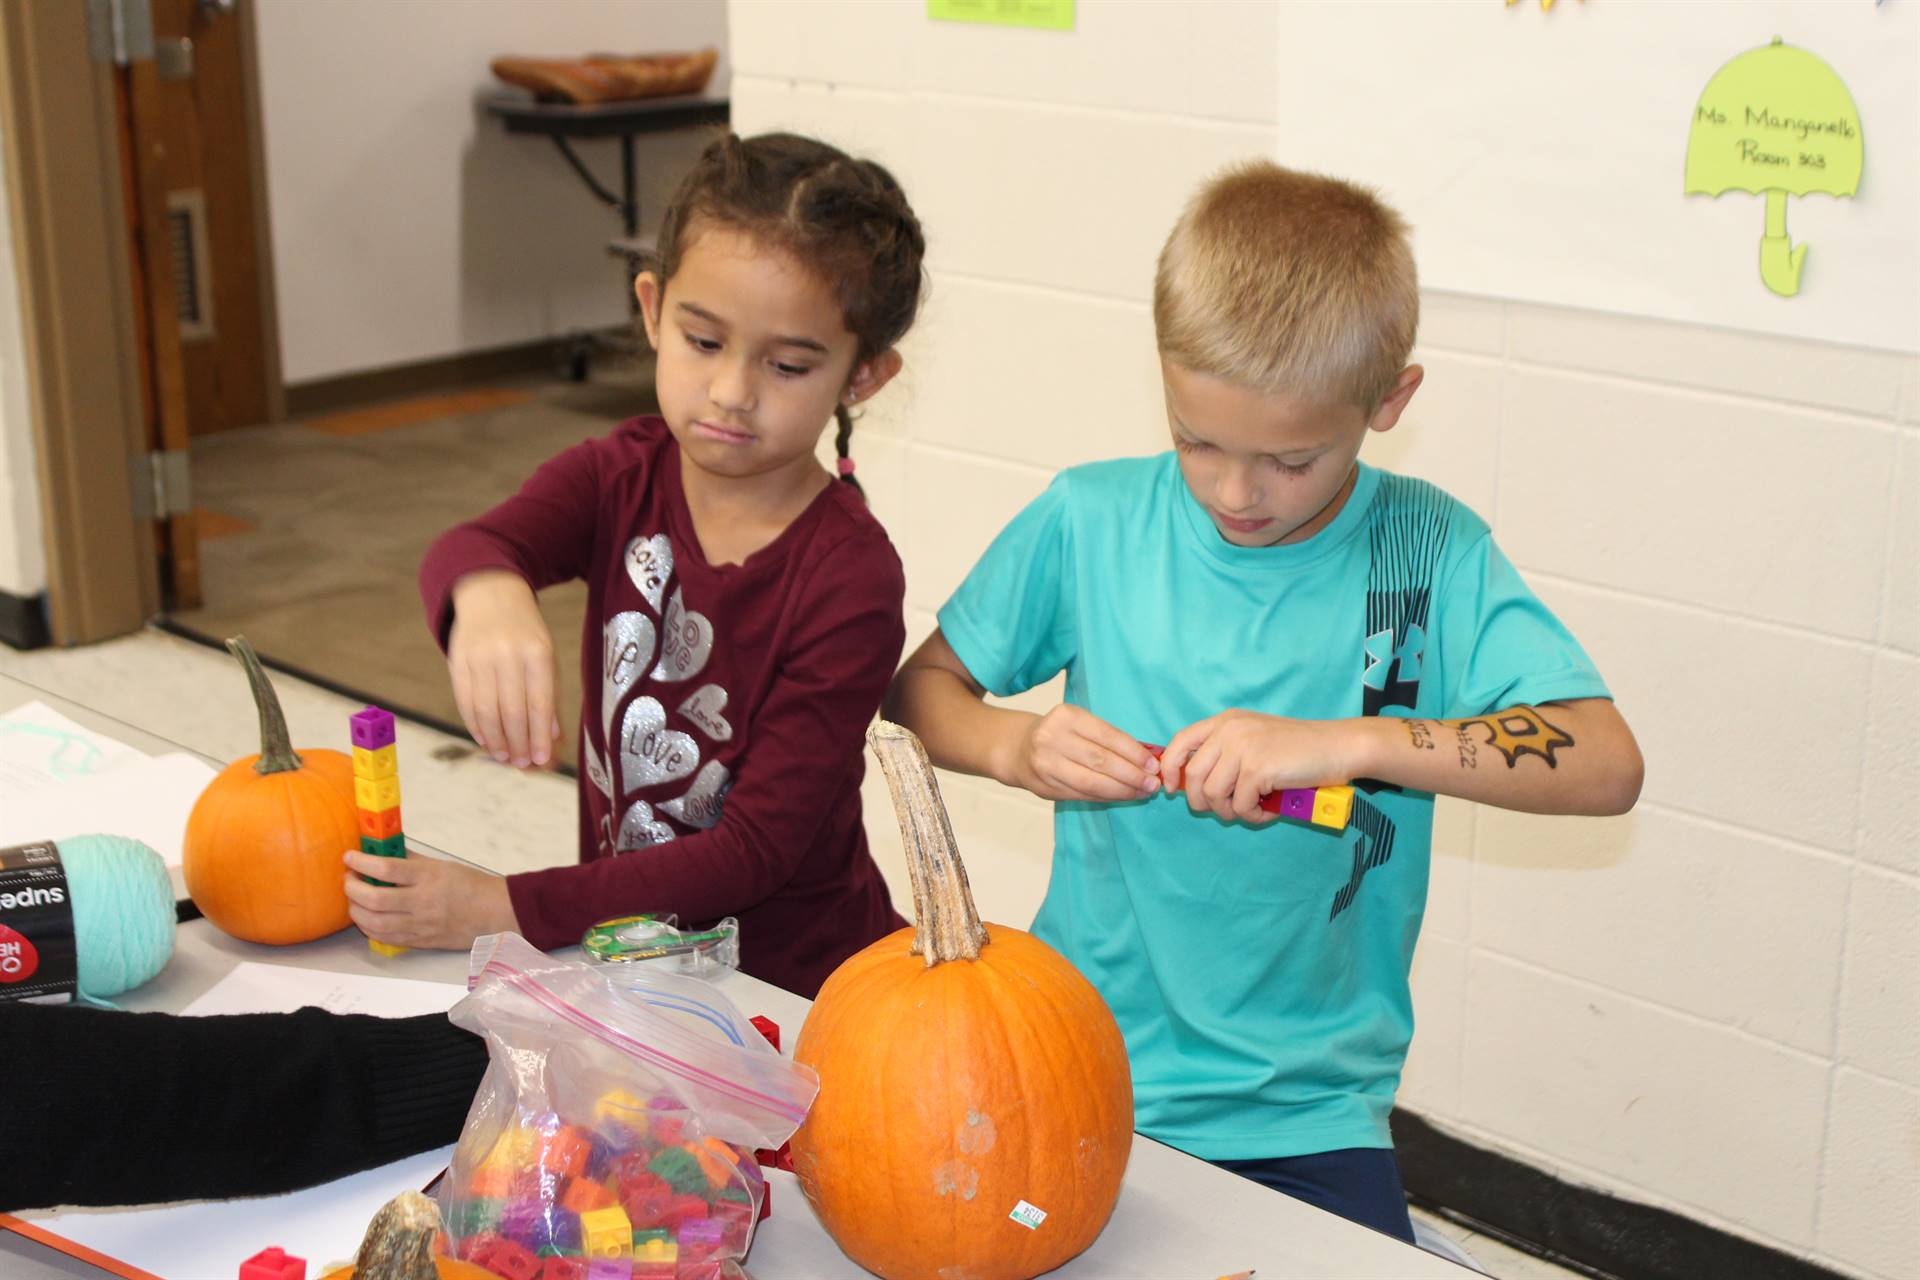 Two students measuring pumpkins